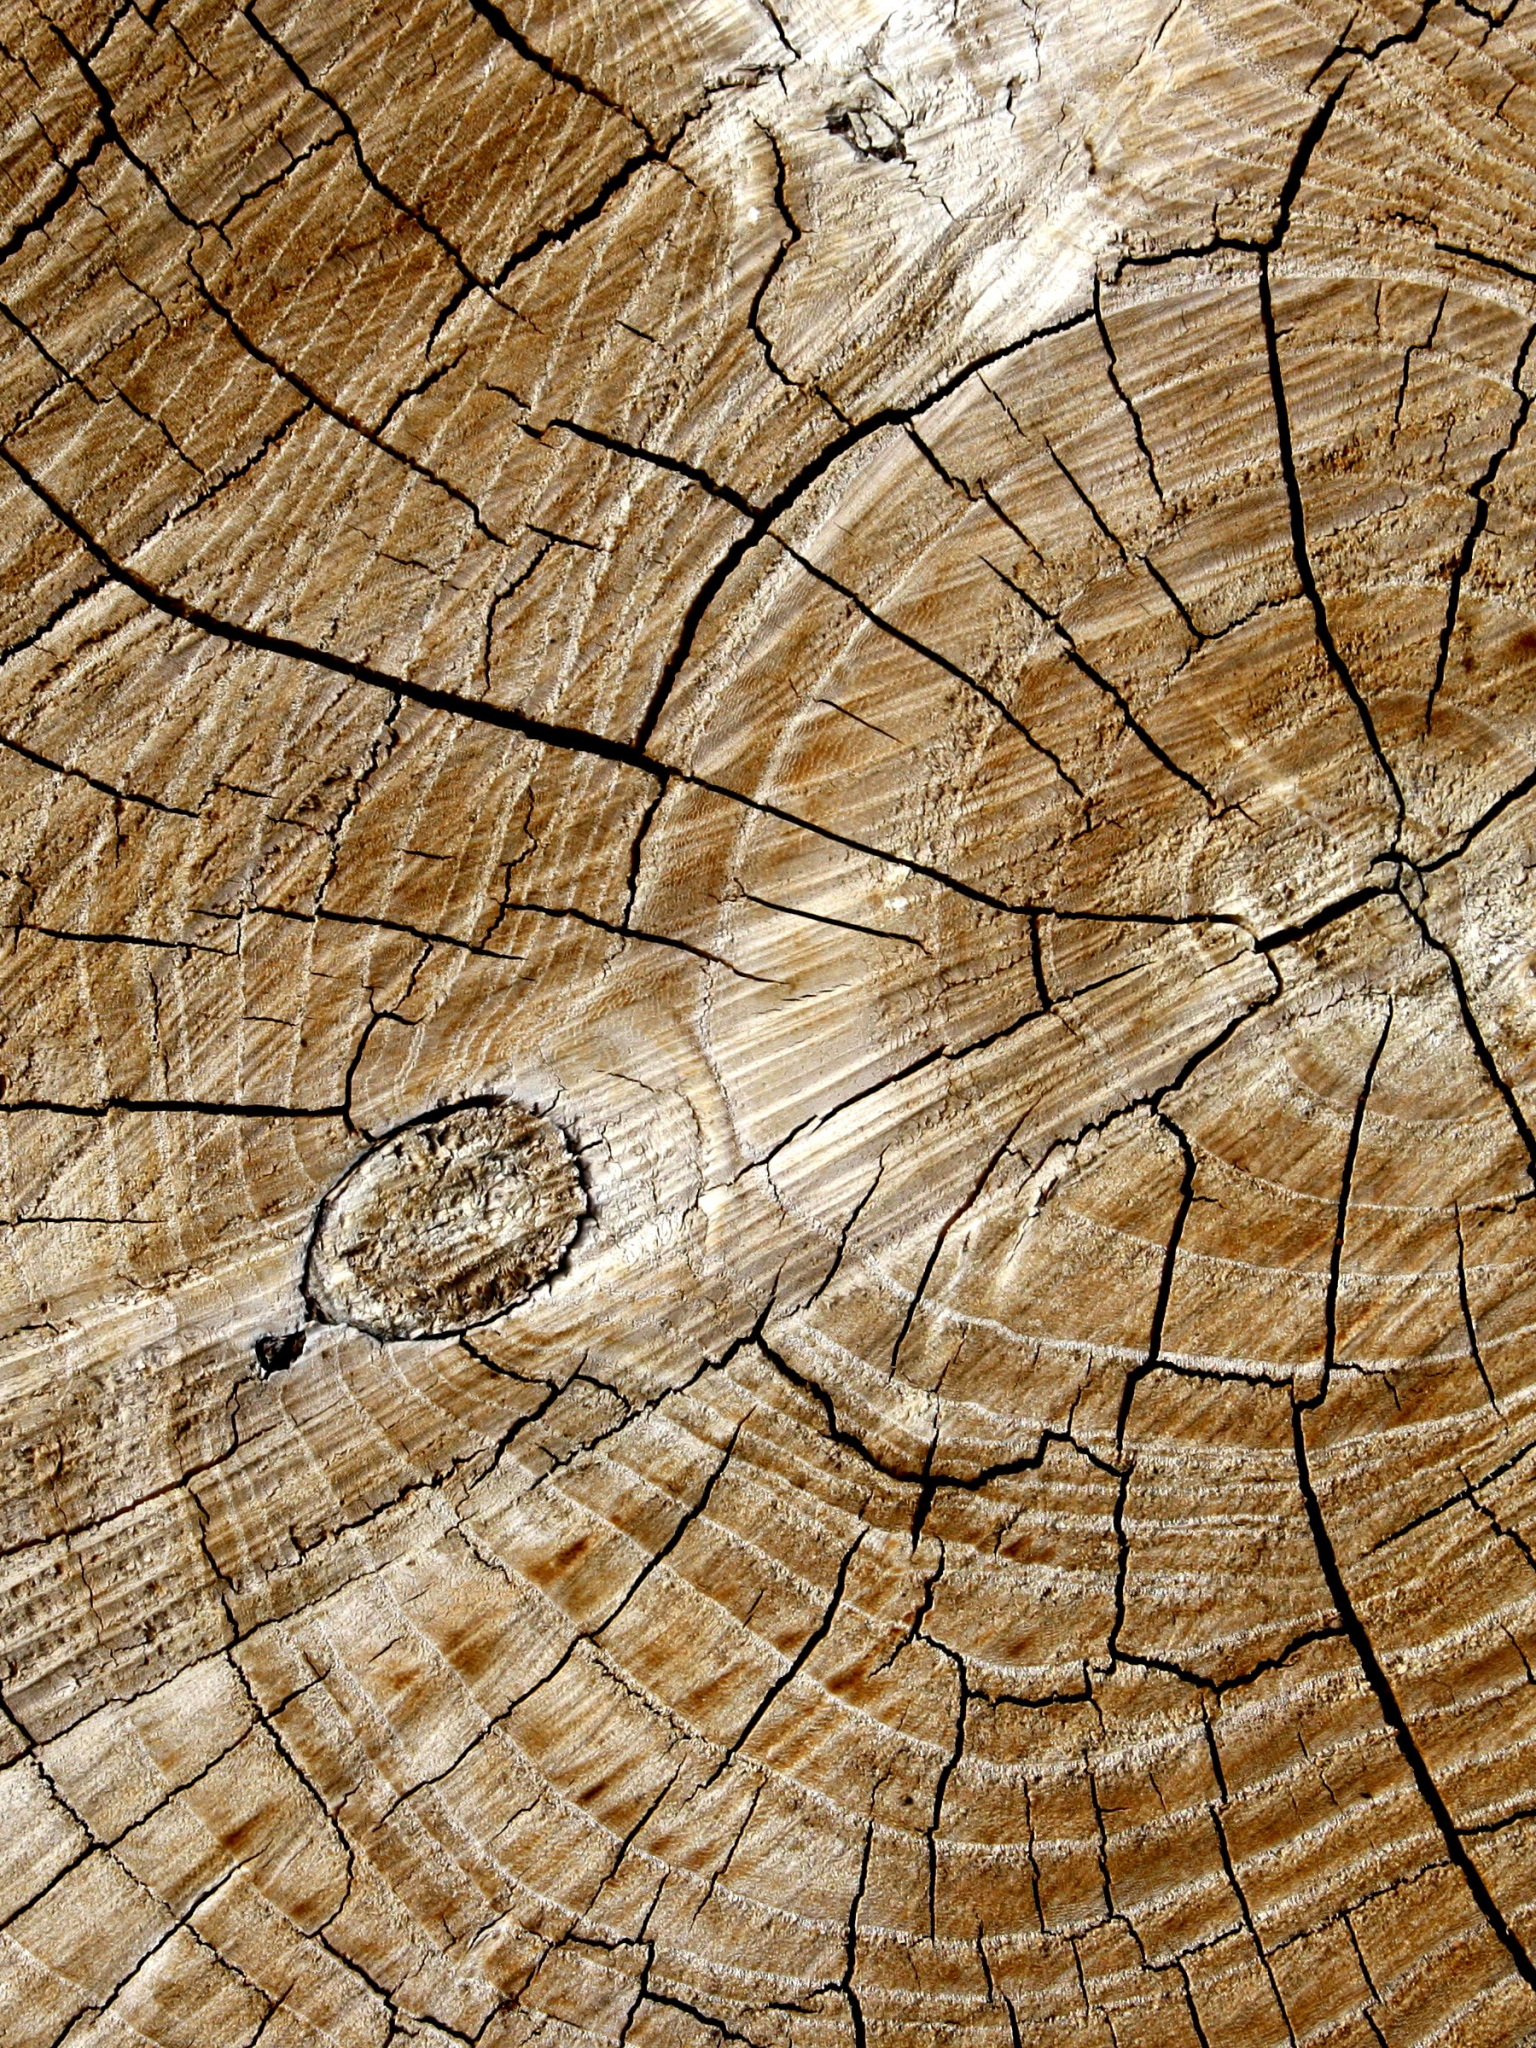 Cut End of Log with Tree Rings